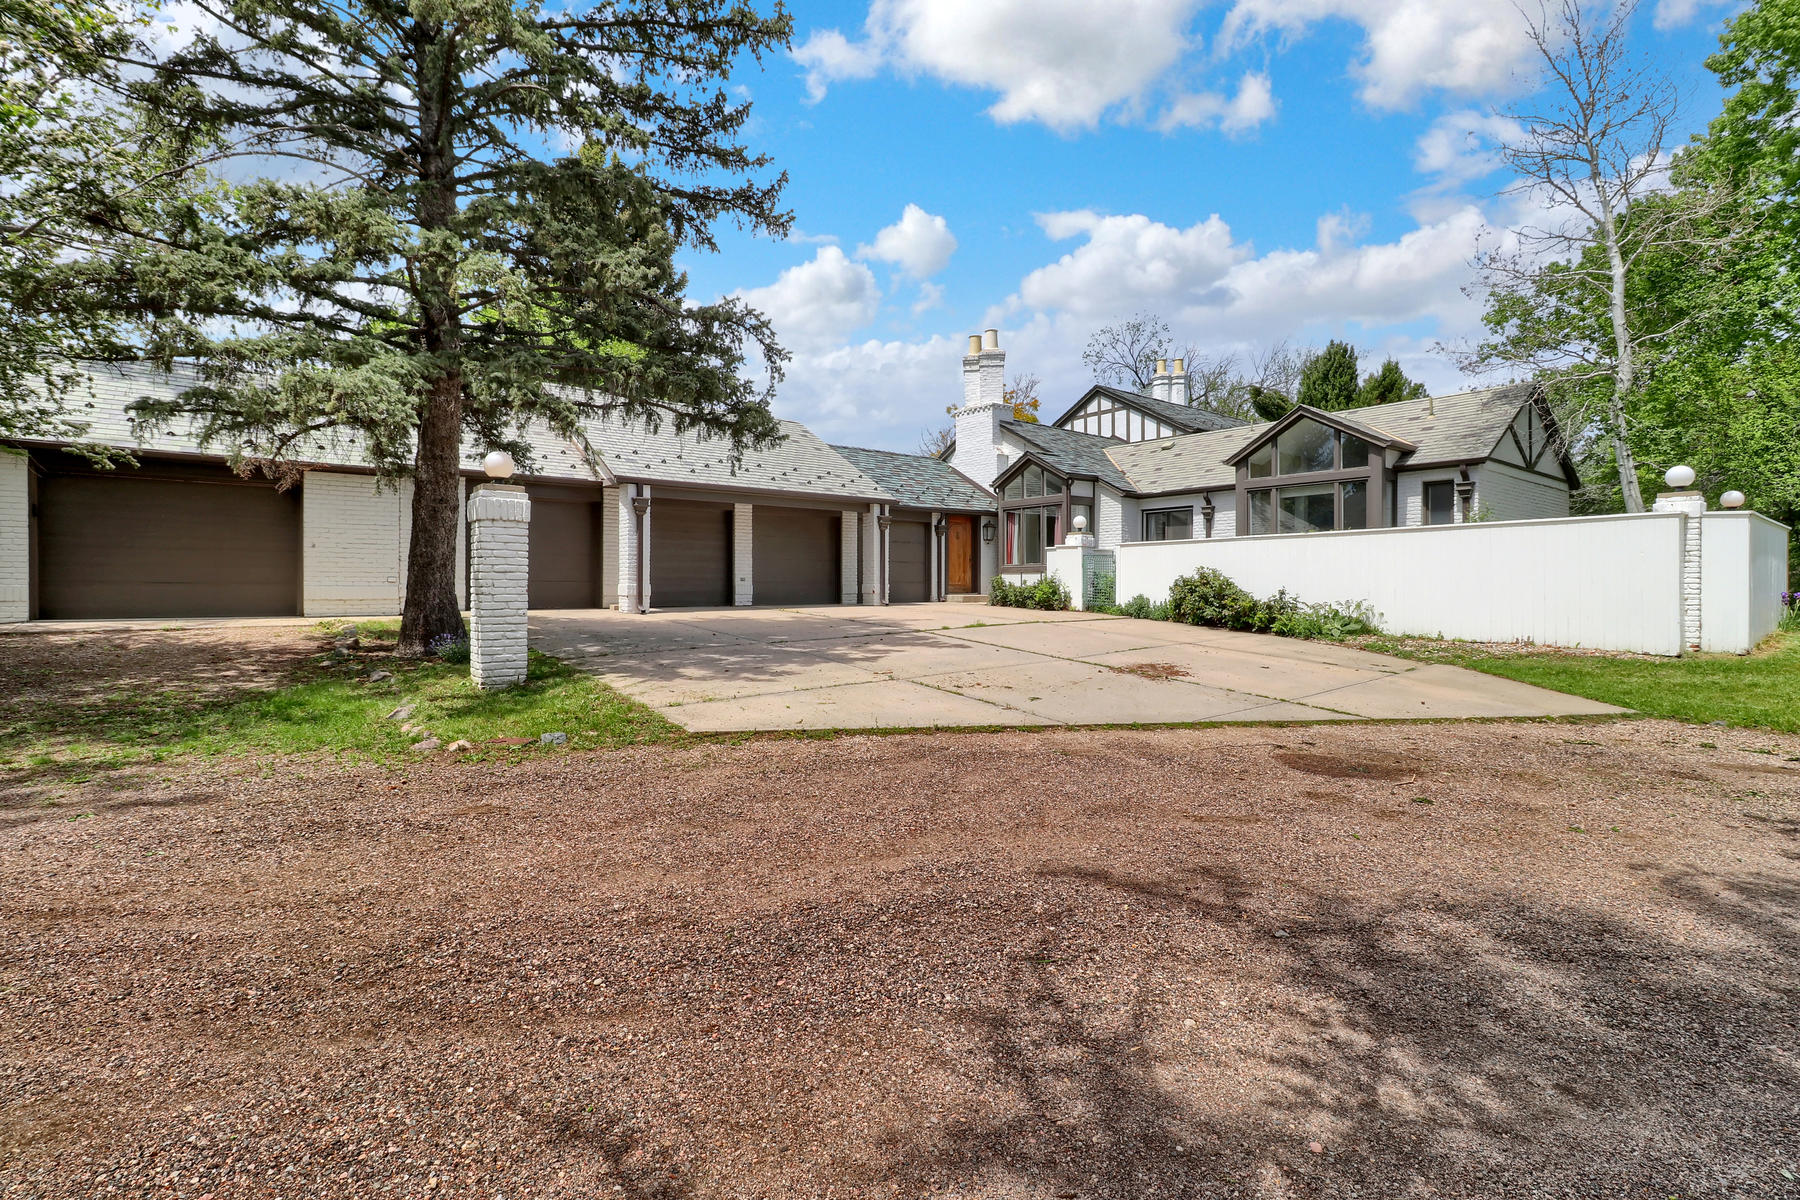 Additional photo for property listing at A MUST SEE! 6650 W Lakeridge Rd Lakewood, Colorado 80227 United States